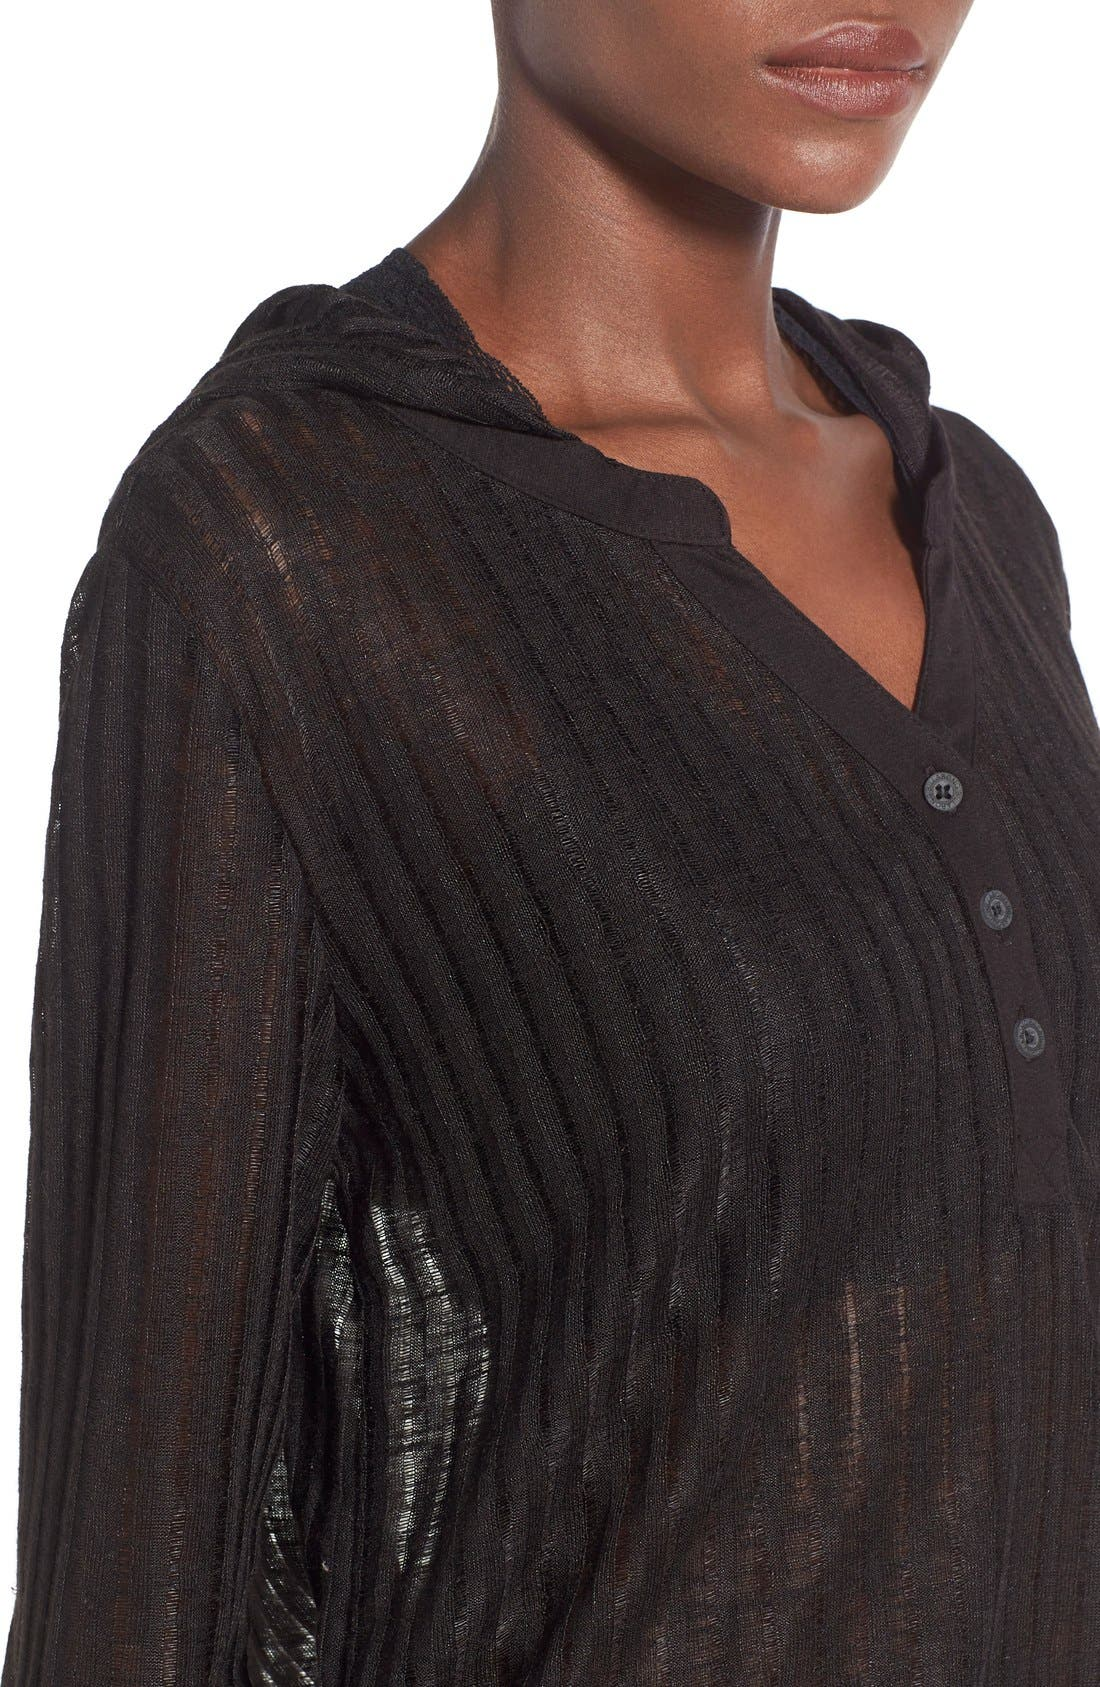 Lovechild Hooded Cover-Up Top,                             Alternate thumbnail 7, color,